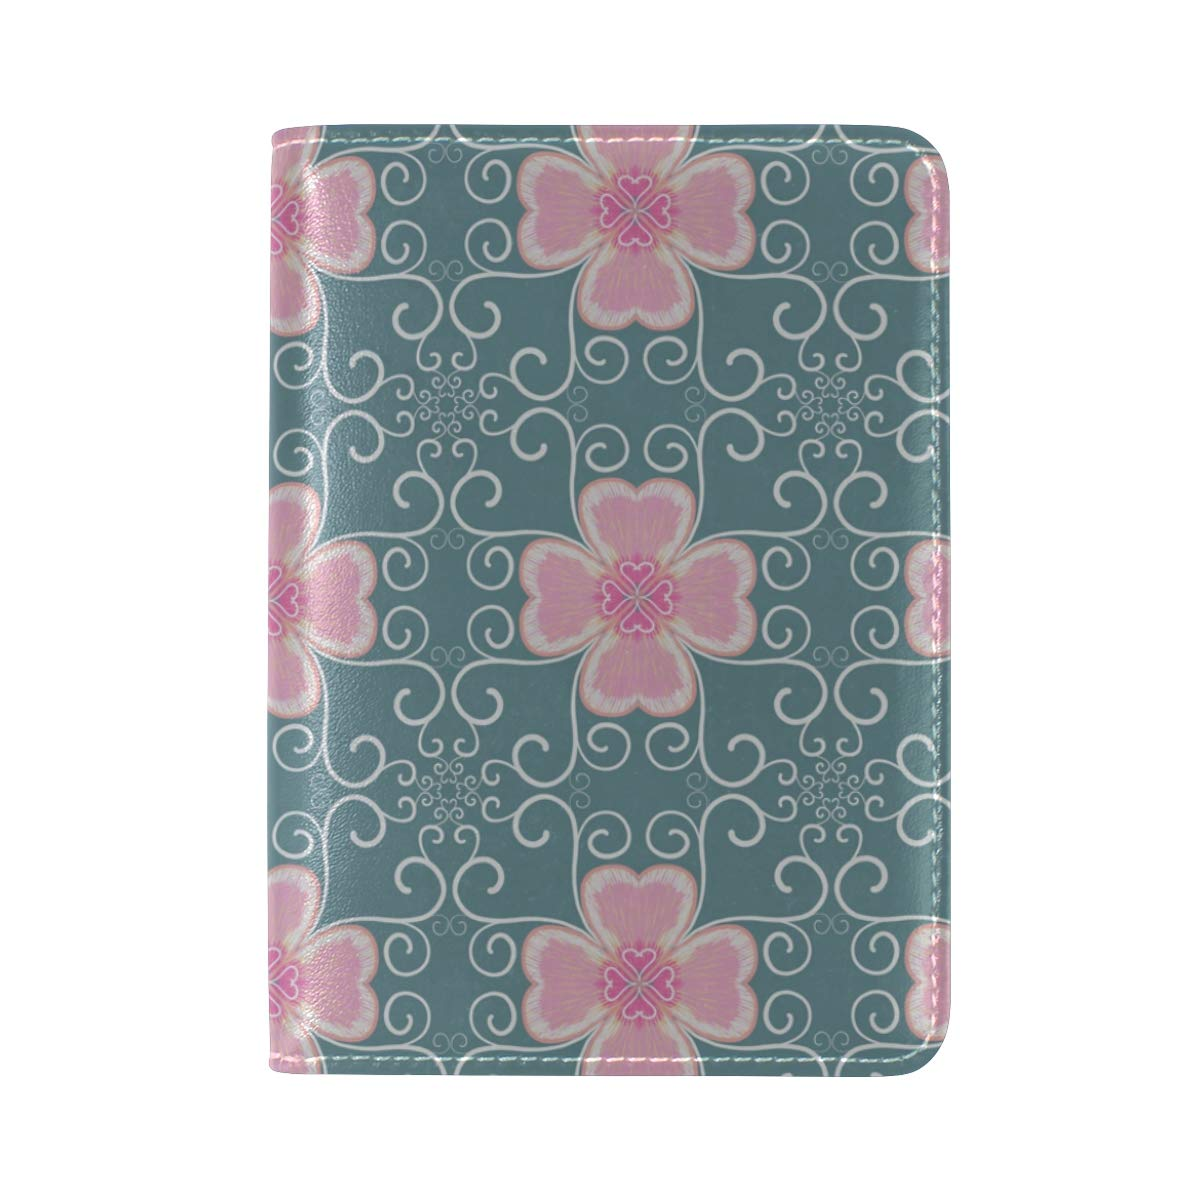 Pink Flower Seamless Patterns One Pocket Leather Passport Holder Cover Case Protector for Men Women Travel